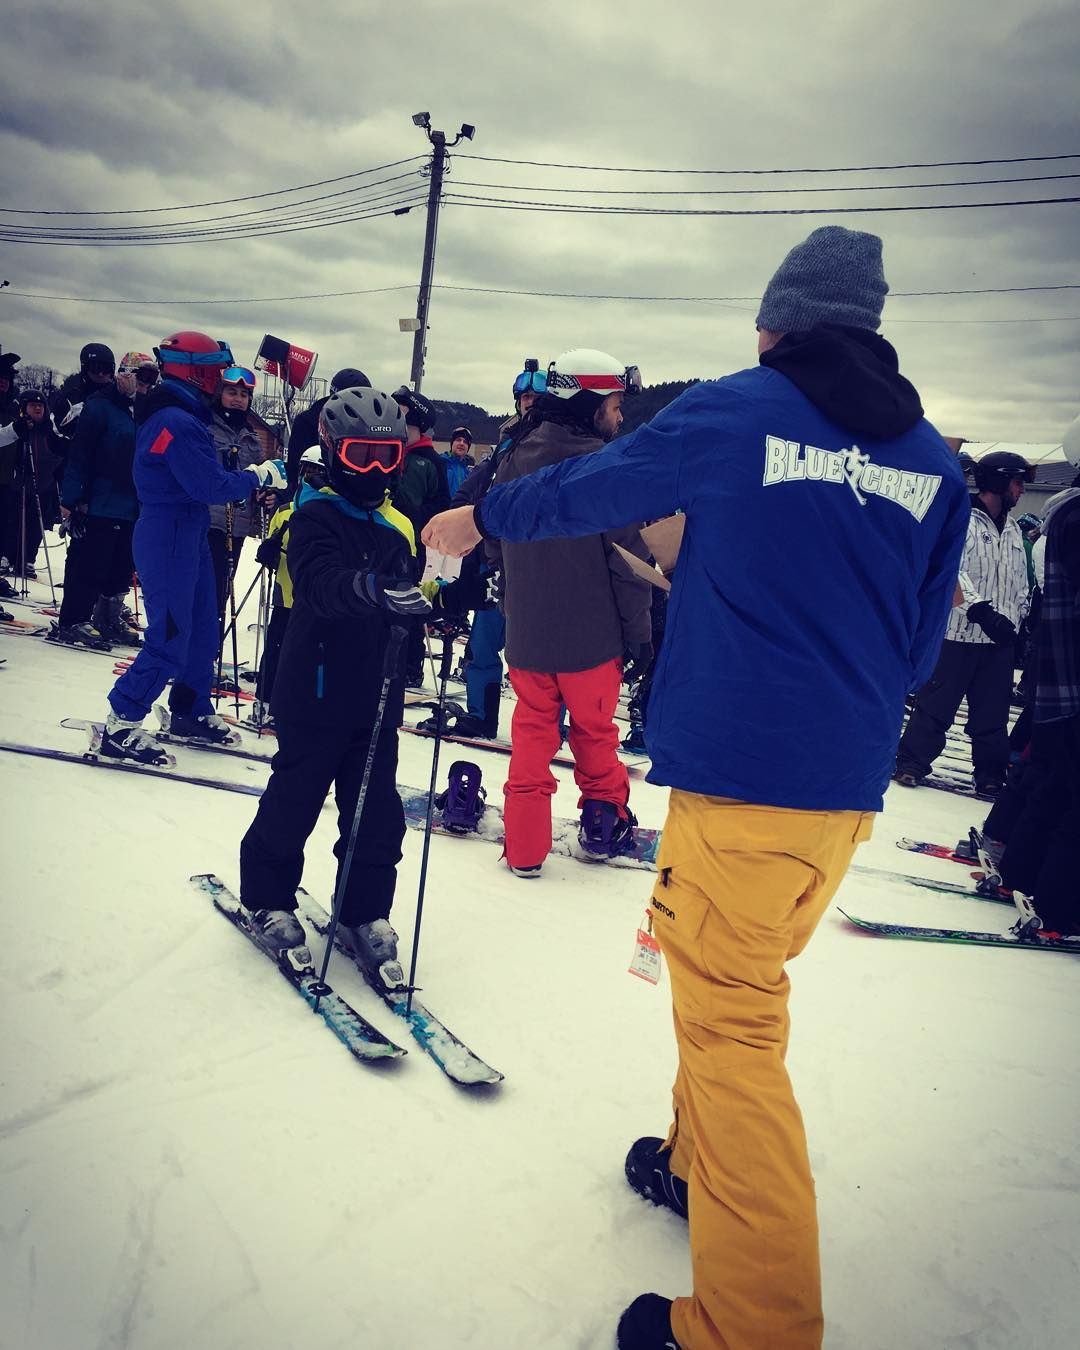 Blue Mountain Resort Skiing And Snowboarding Learning Environments Skiing Snowboarding